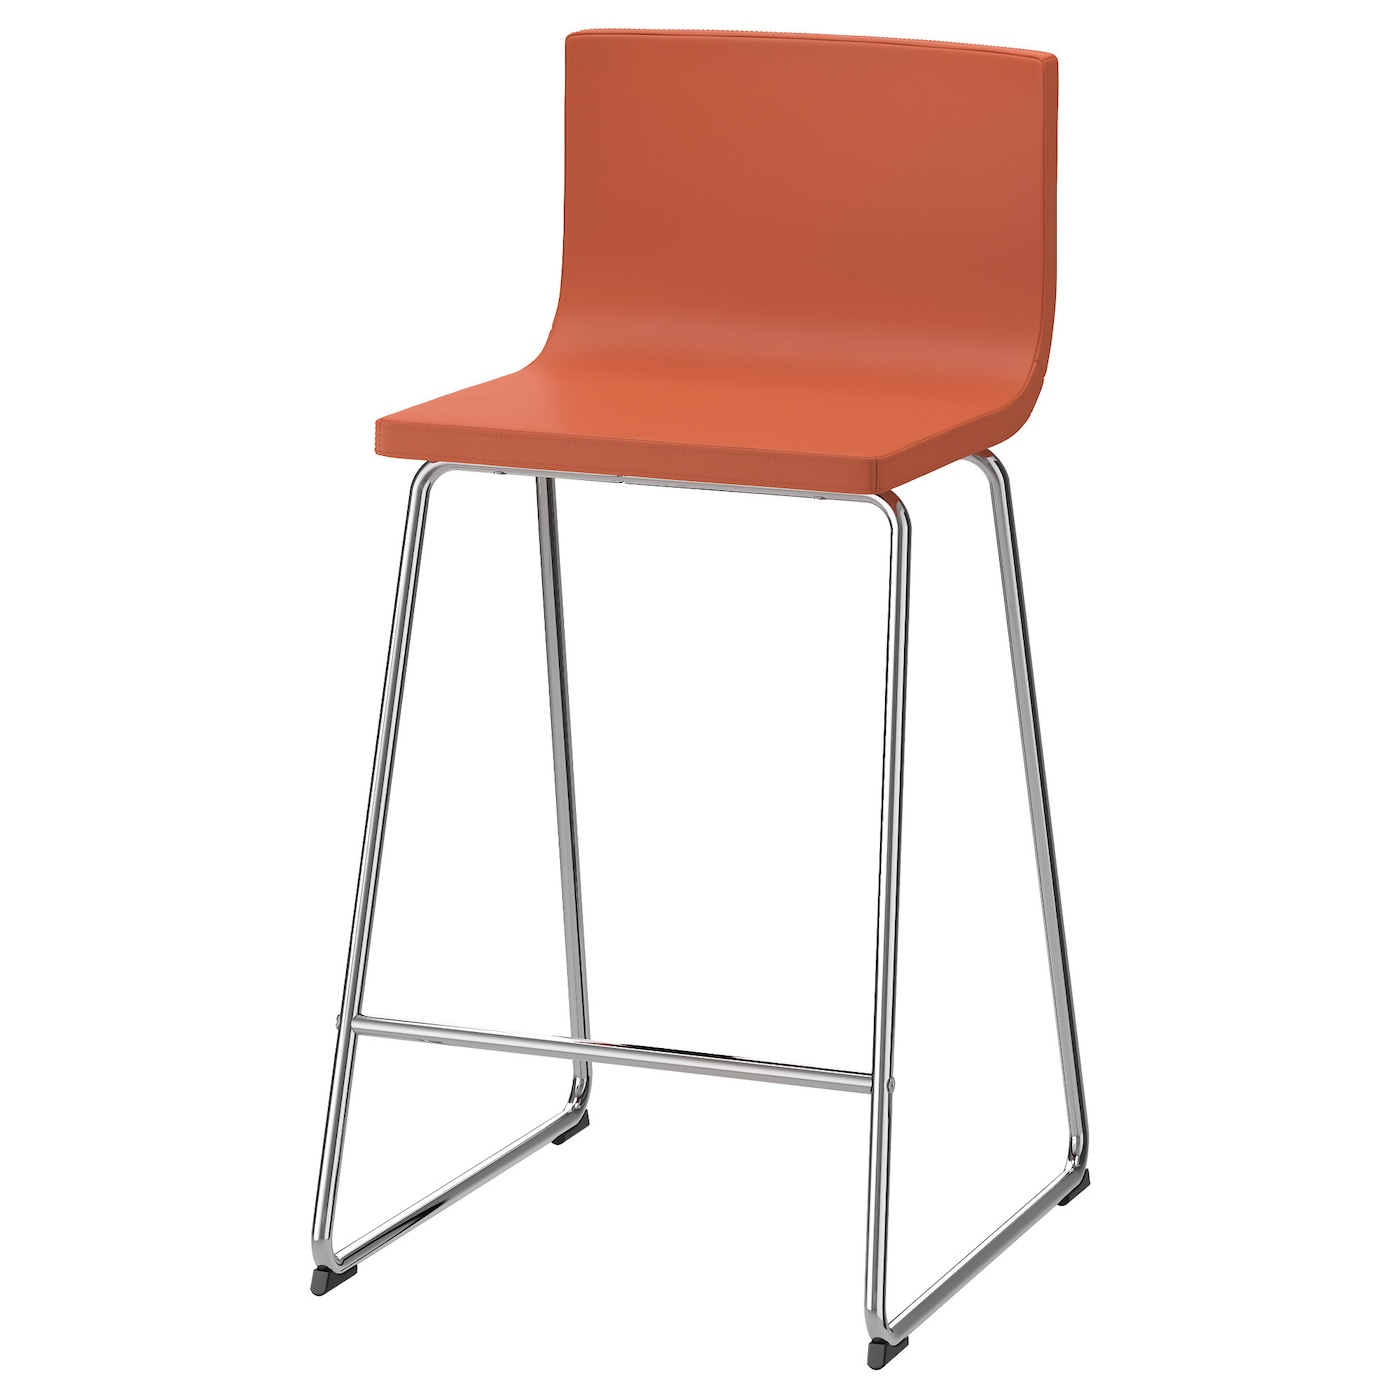 bernhard bar stool with backrest chrome plated mjuk orange 63 cm ikea. Black Bedroom Furniture Sets. Home Design Ideas